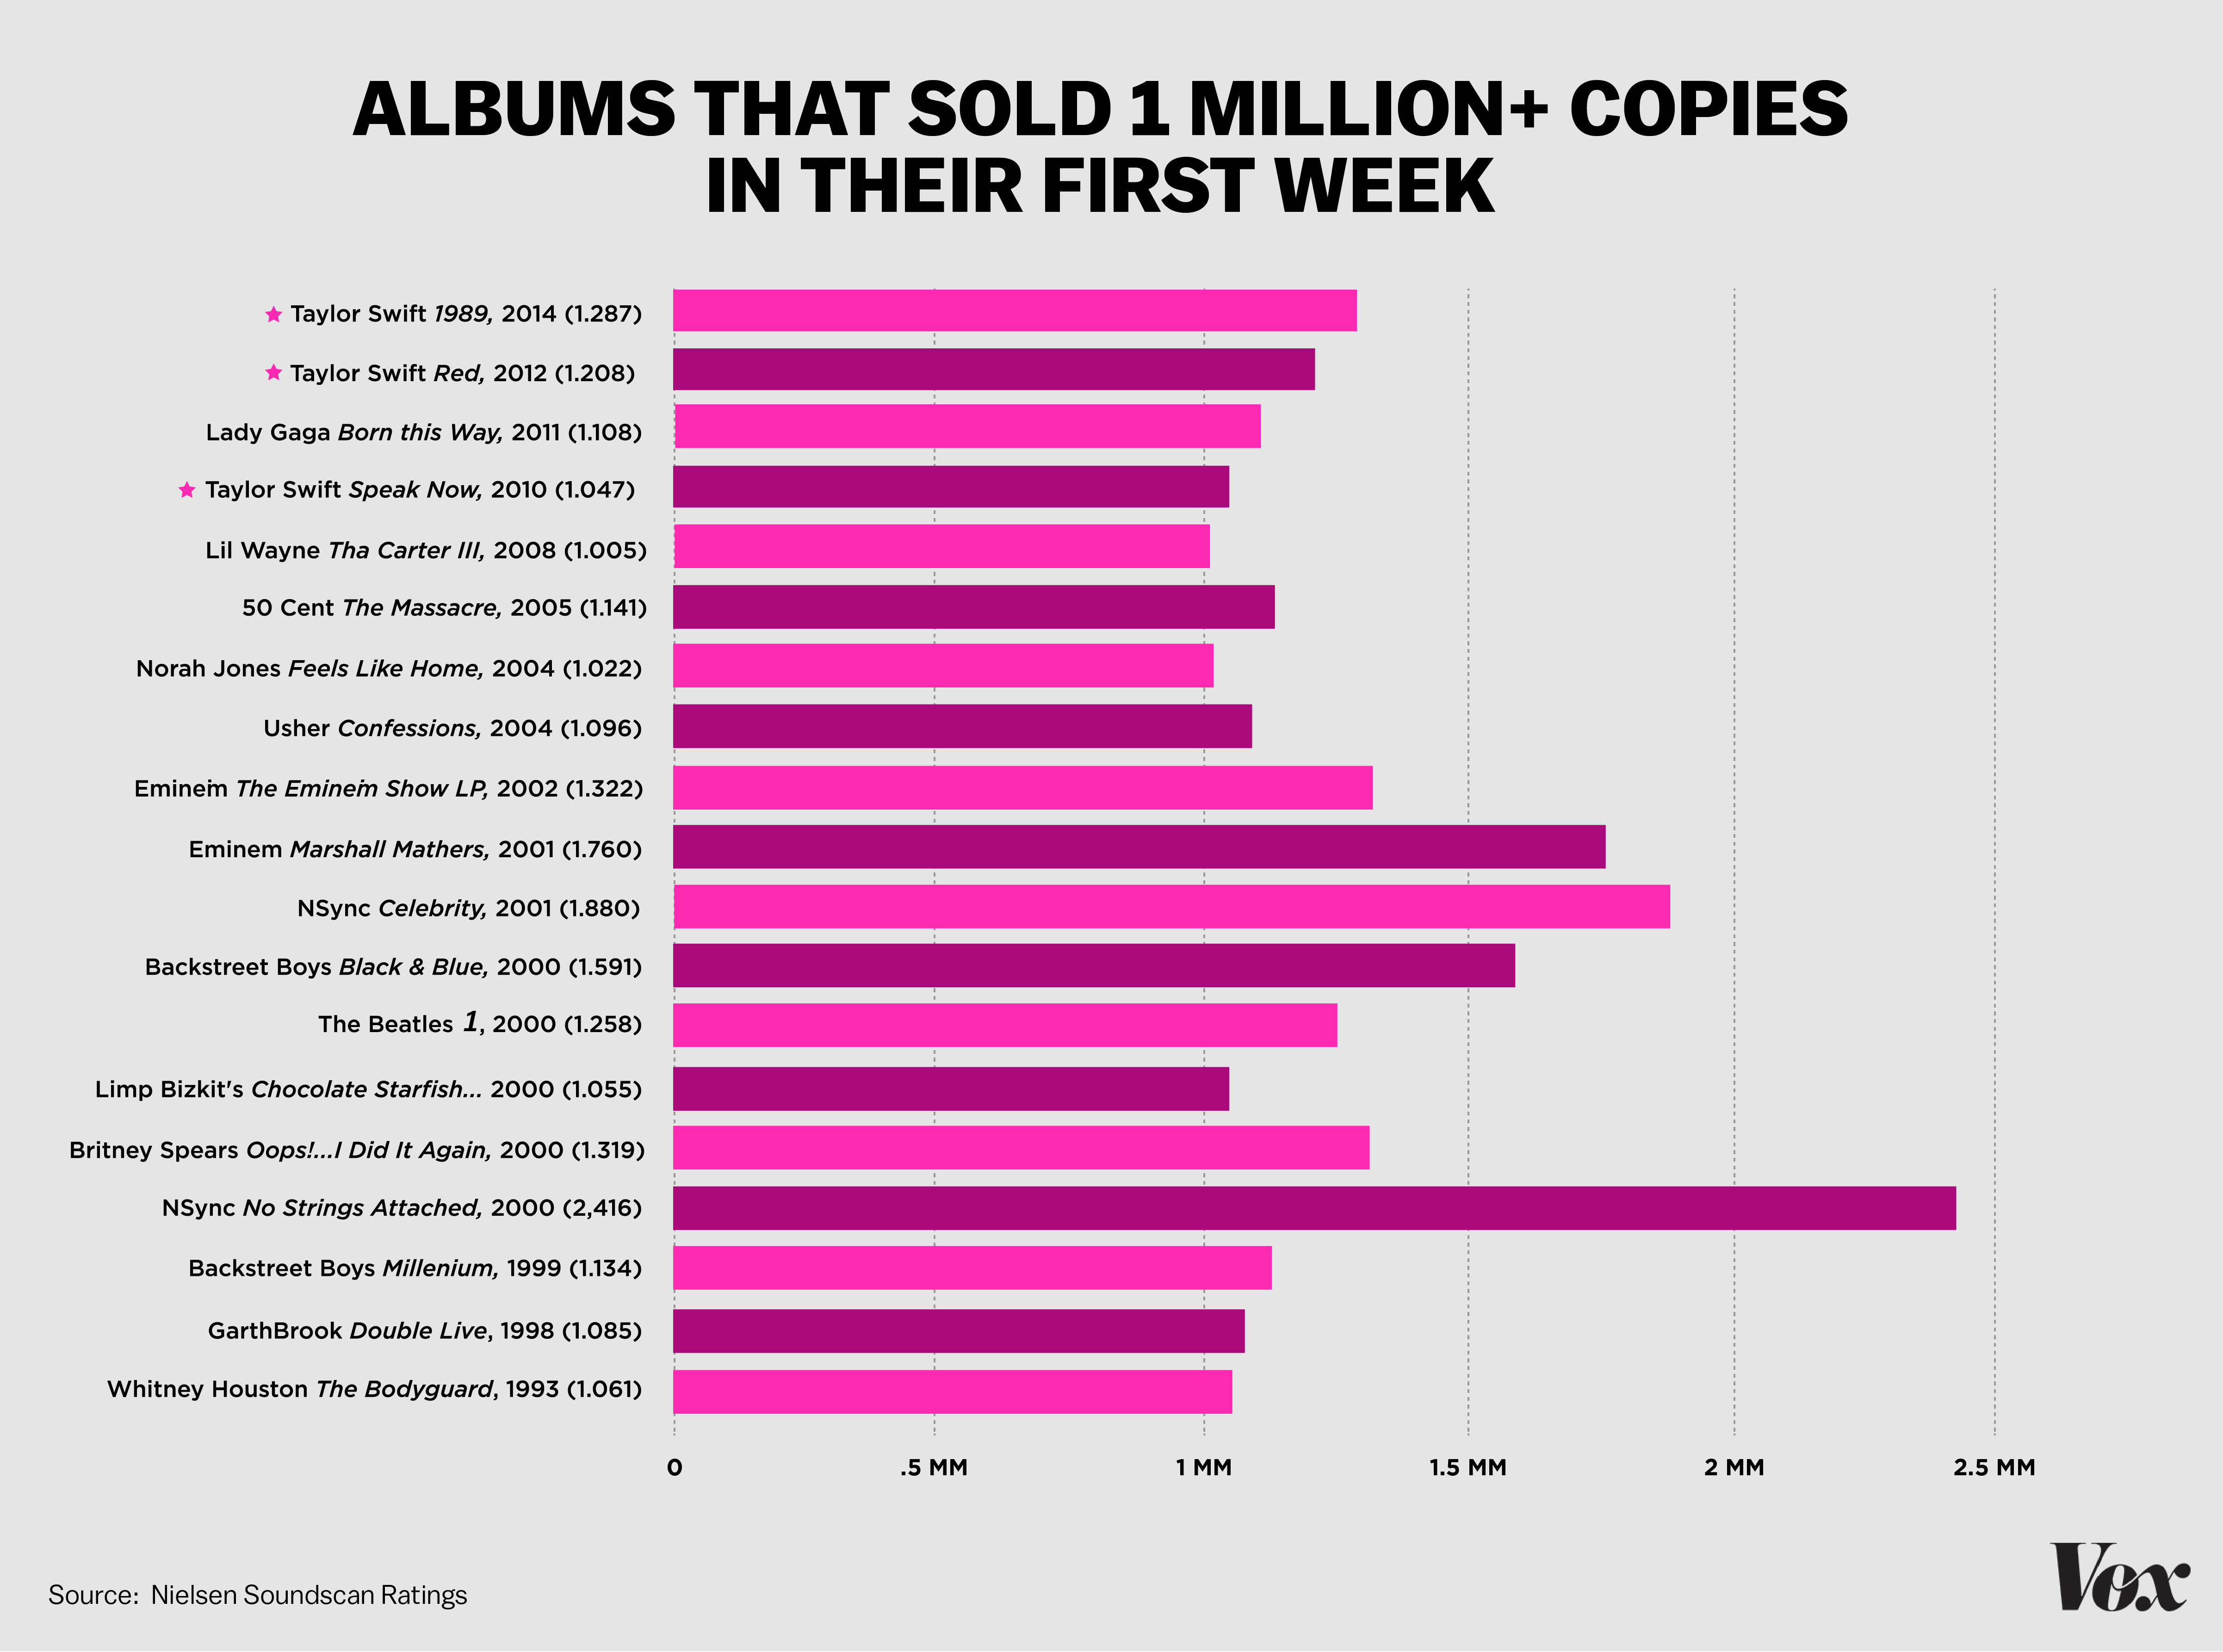 Taylor Swift sold 1.287 million albums last week. But the ...